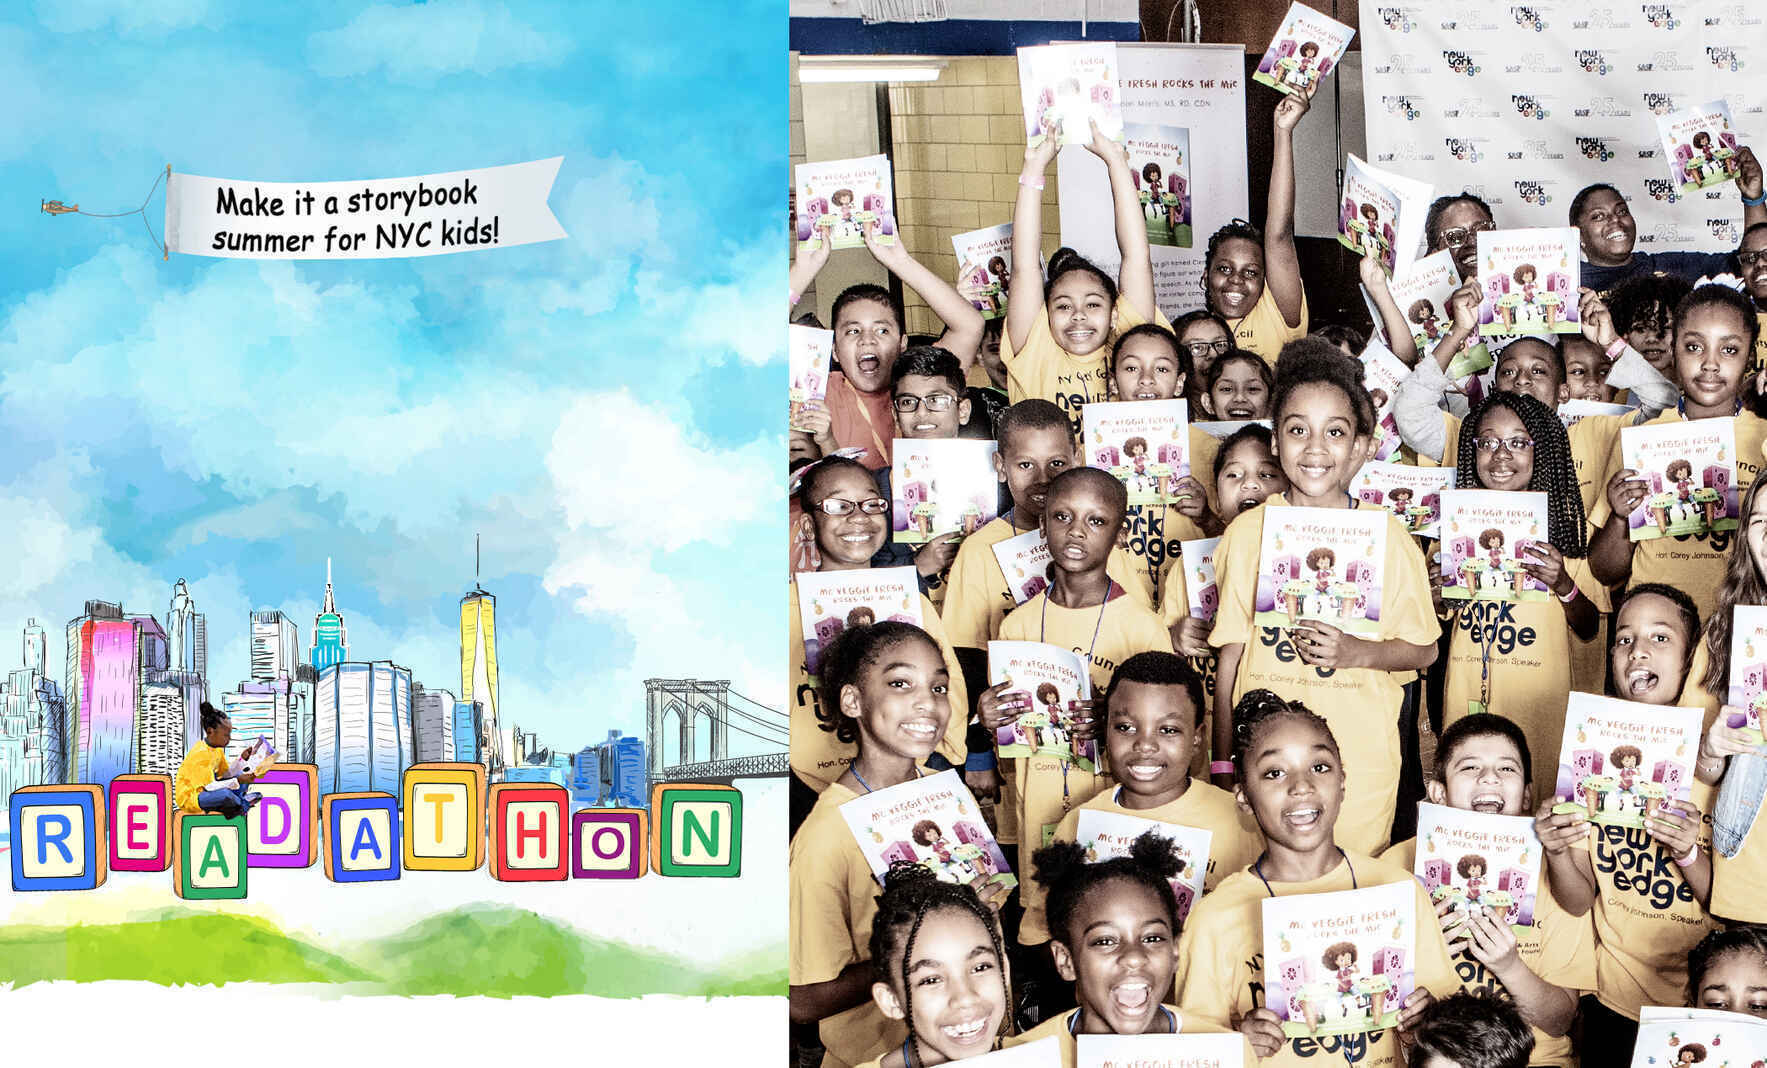 Make it a storybook summer for NYC kids!  image